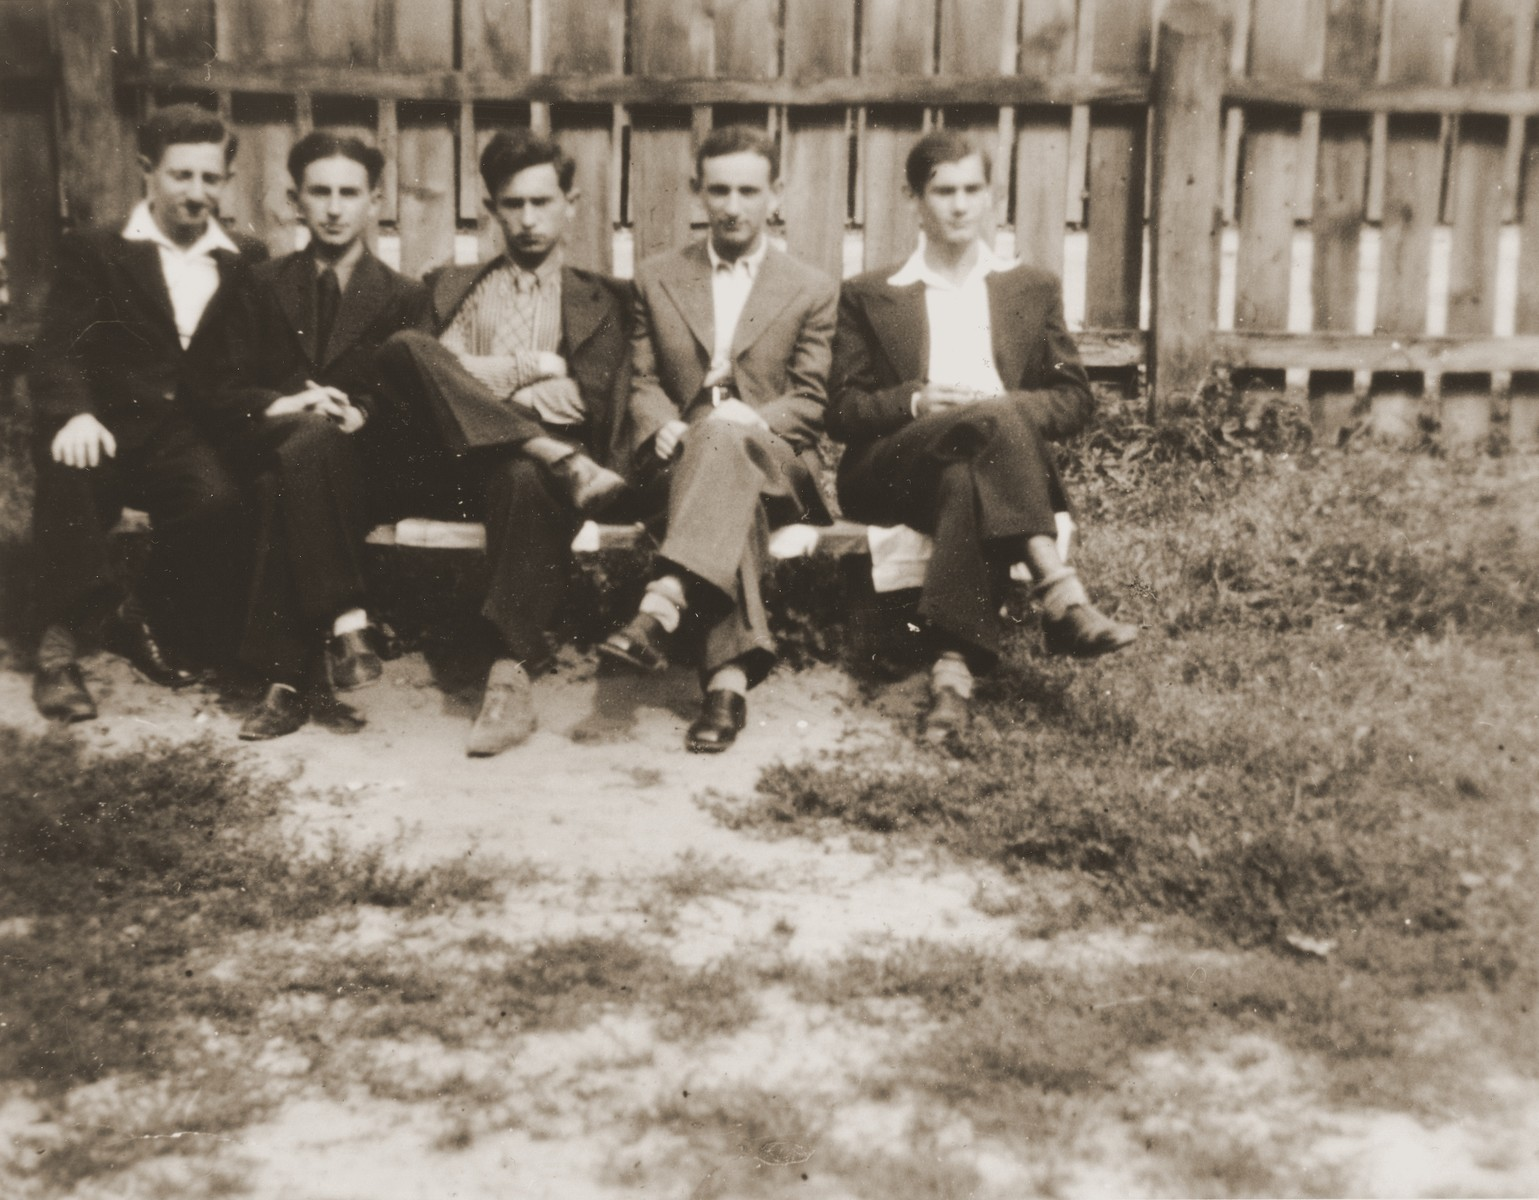 Five Jewish high school friends pose outside on a bench in front of a fence in Brody, Poland.    Among those pictured are: Joseph Ettinger (right) and Henryk Lanceter (second from the right).